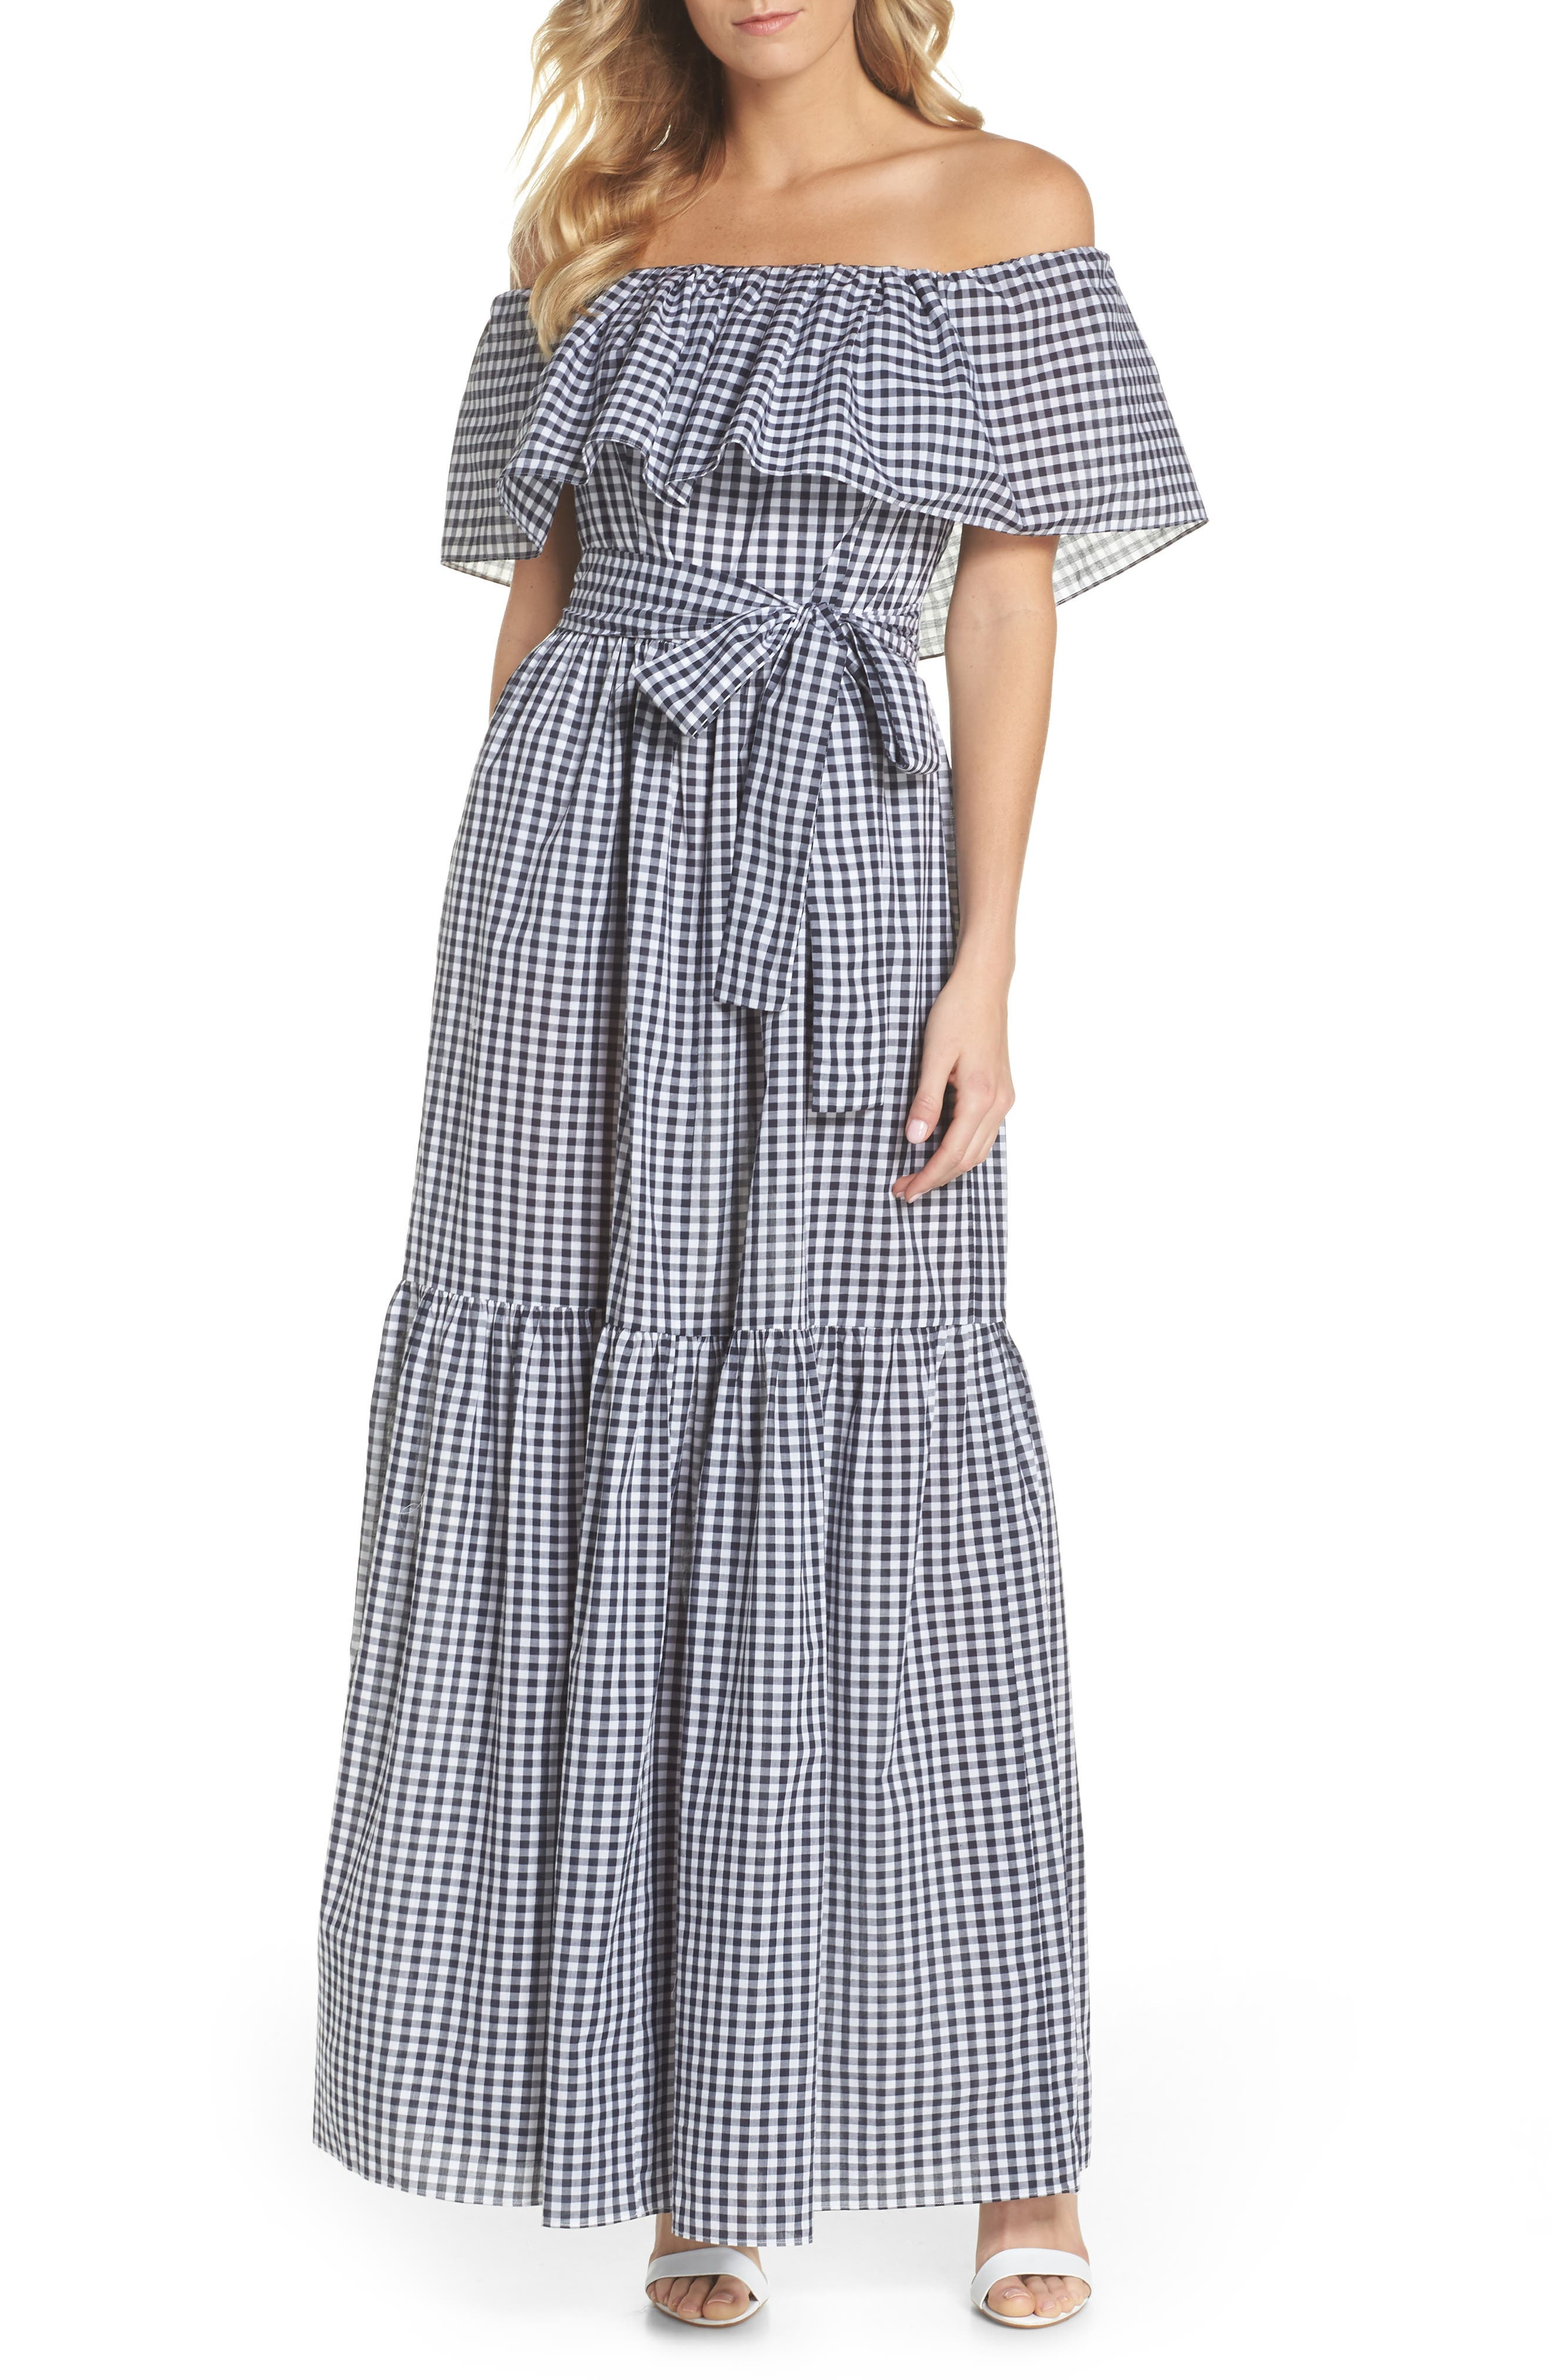 Off the Shoulder Ruffle Gingham Maxi Dress,                         Main,                         color, Blue White Gingham